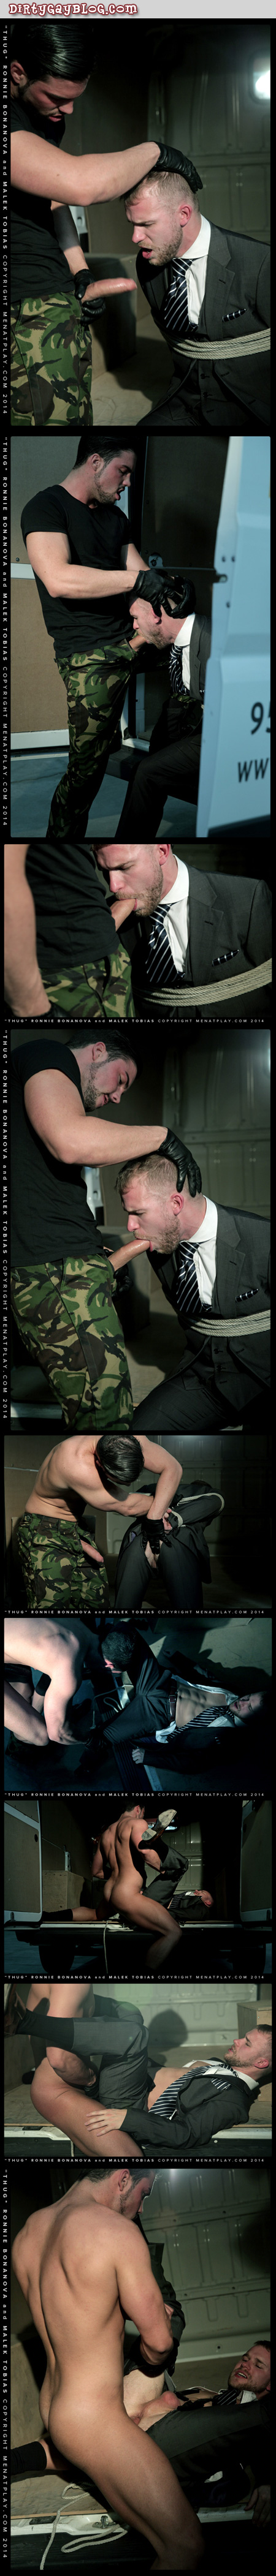 Sexy blonde businessman is forced to suck big uncut military man's cock before being fucked by him through his torn suit.